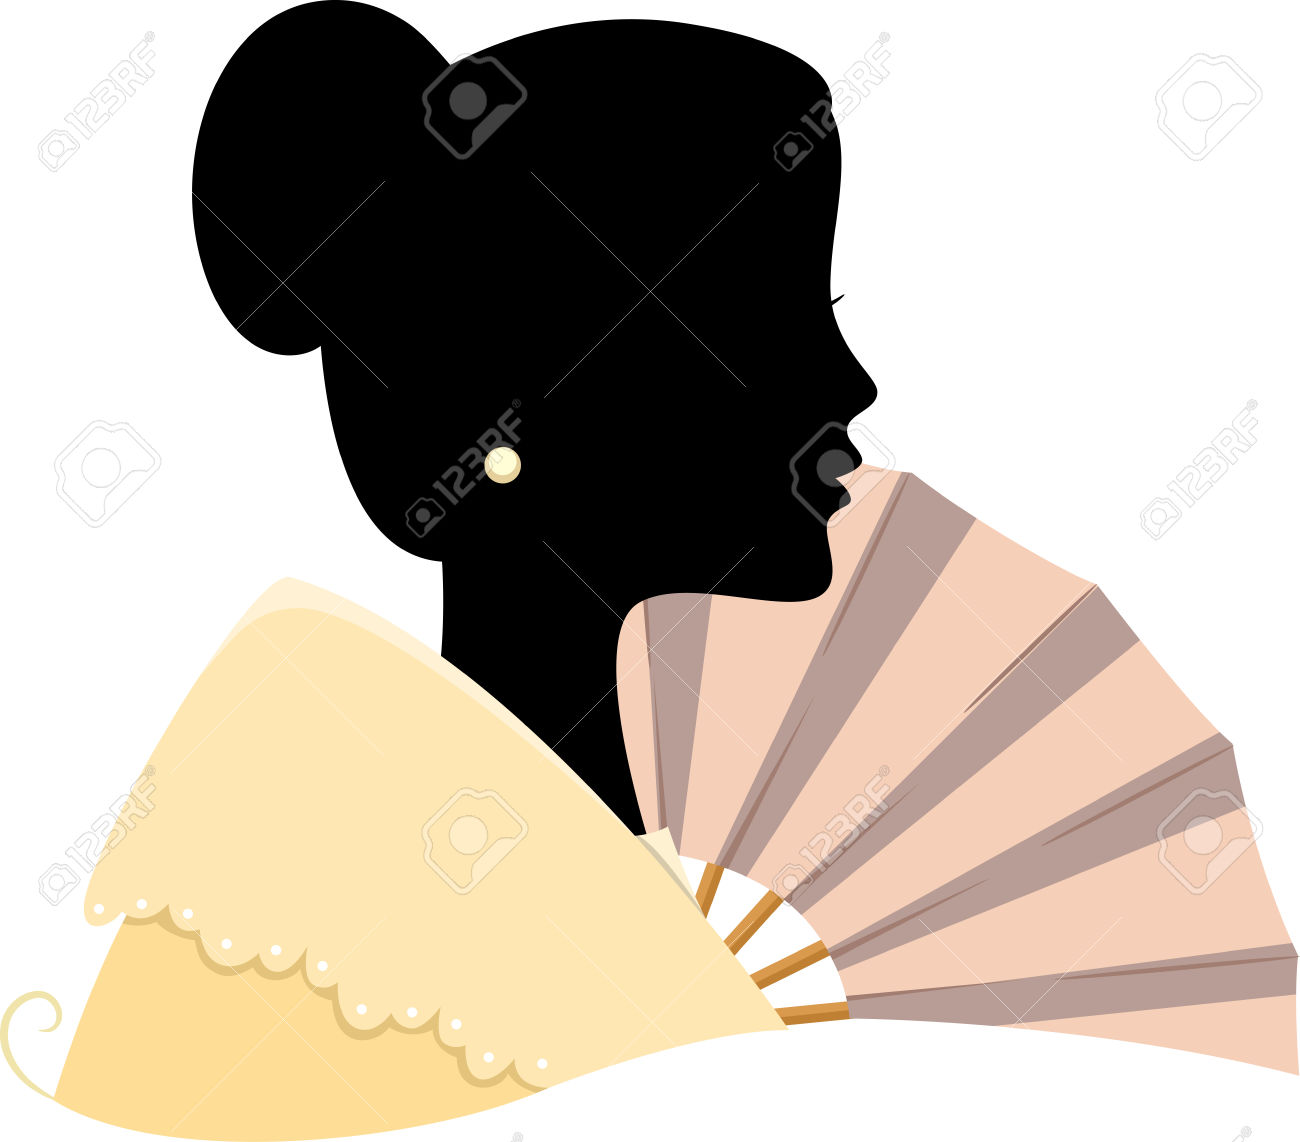 Illustration Featuring The Silhouette Of A Filipino Woman Royalty.